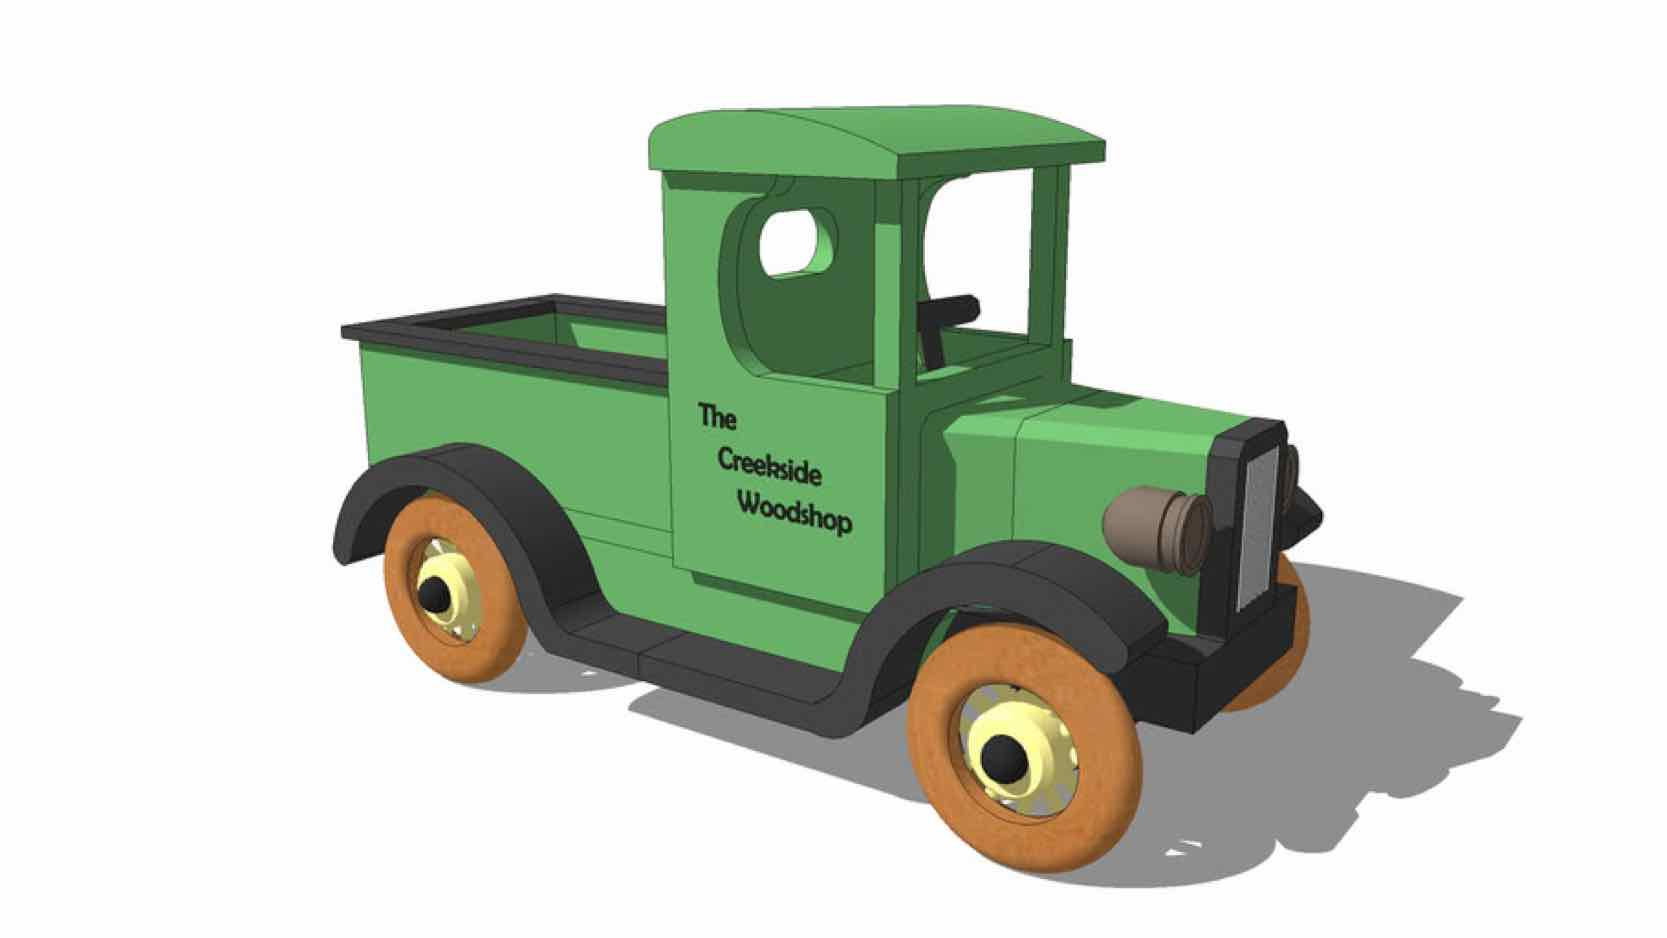 toys,trucks,models,sketchup,Google 3D,3-D warehouse,pickups,childschildrens,kids,,drawings,free woodworking plans,projects,do it yourself,woodworkers